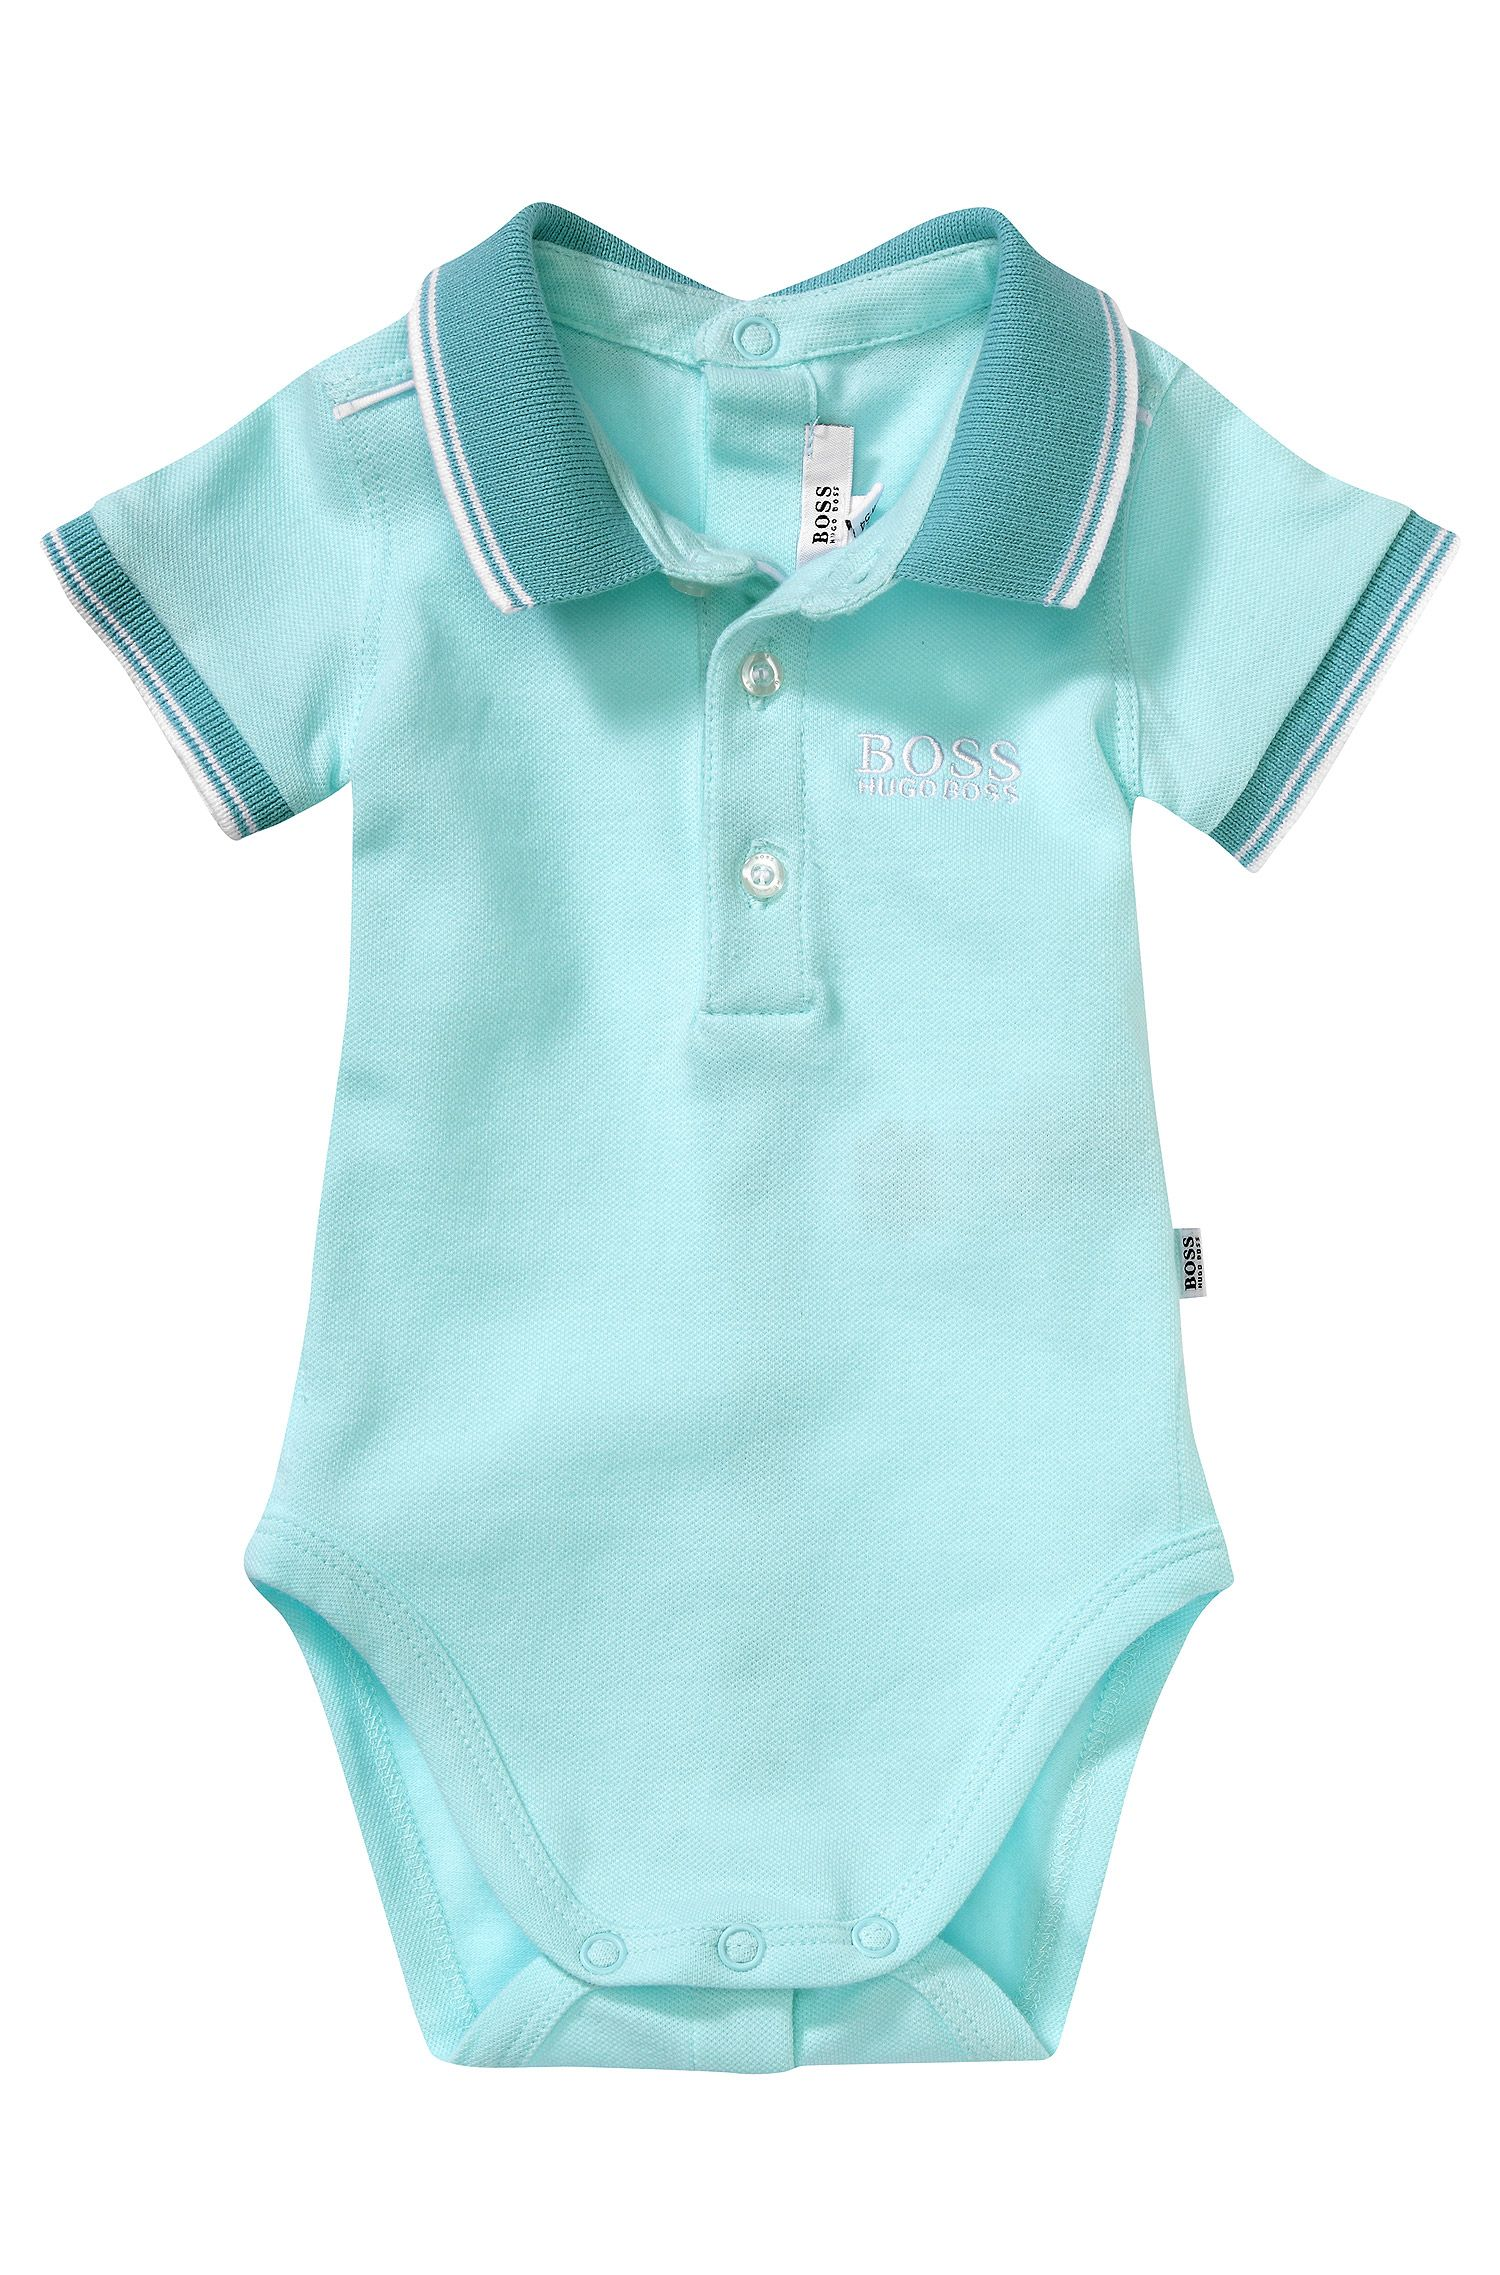 Baby-Polo-Body ´J97081` aus Baumwoll-Mix